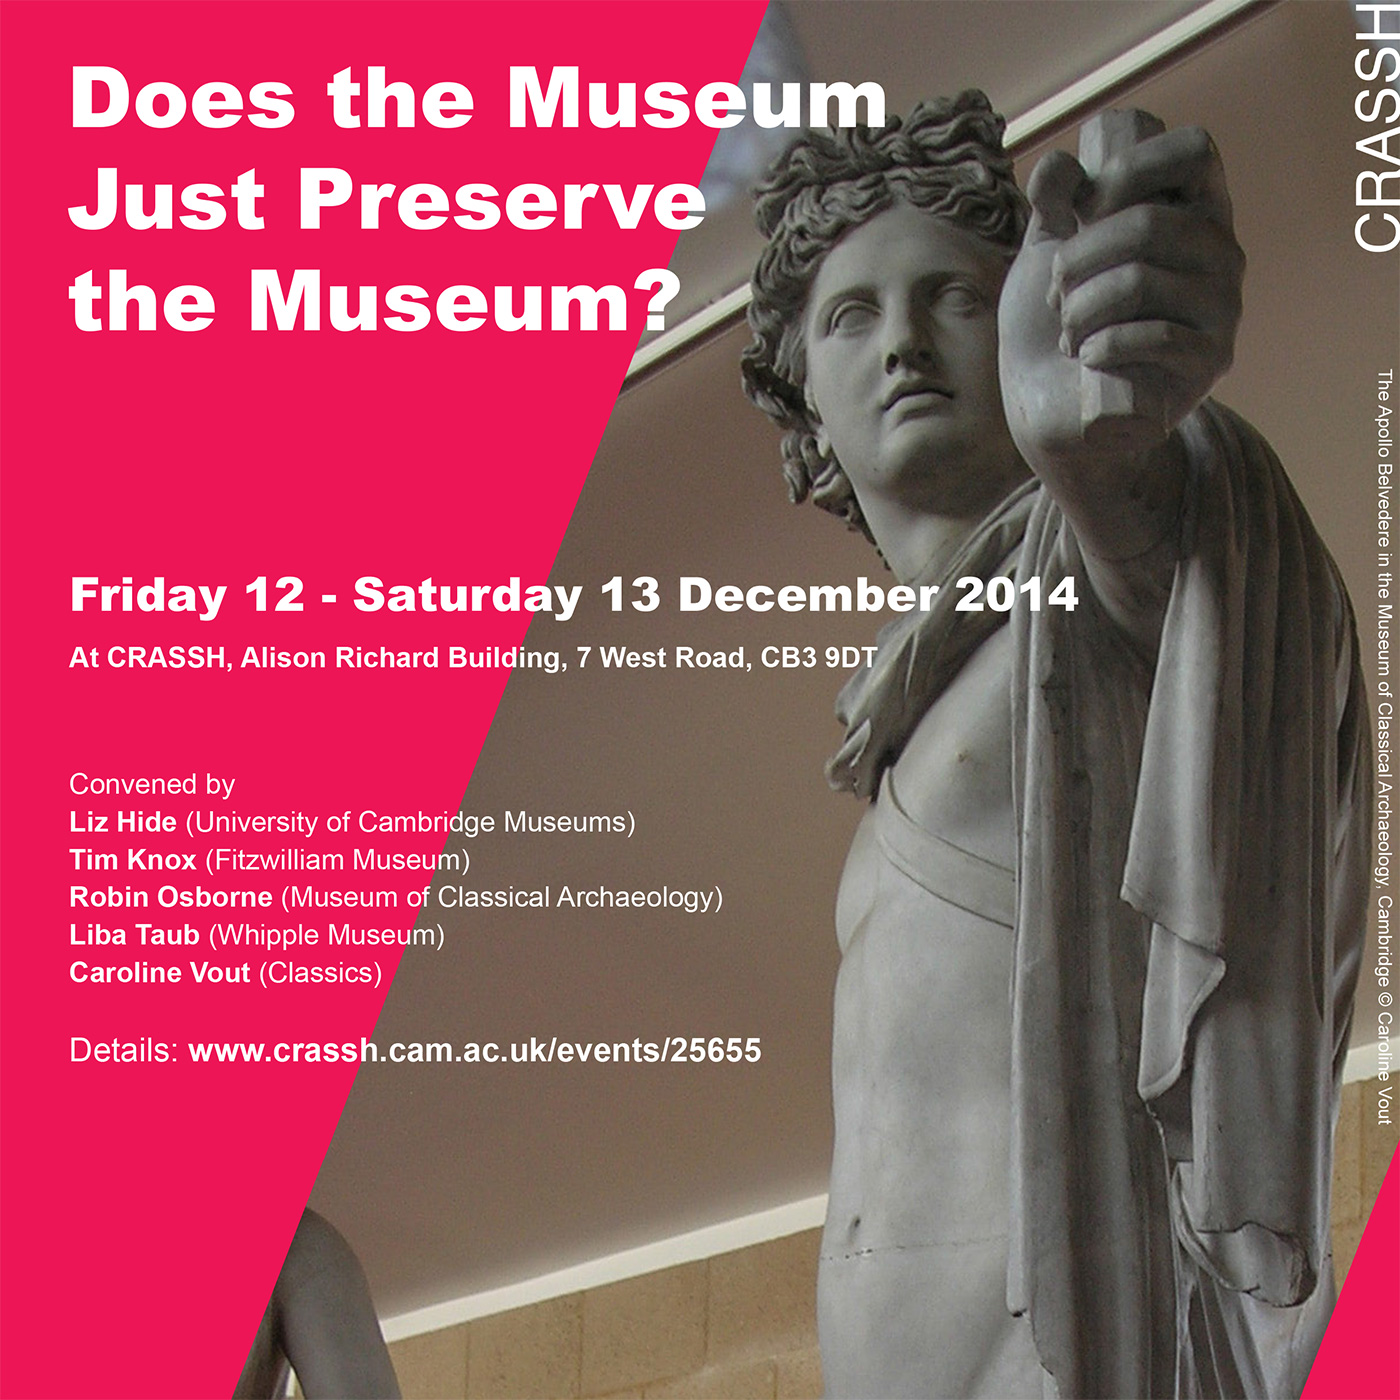 Does the Museum Just Preserve the Museum?'s image